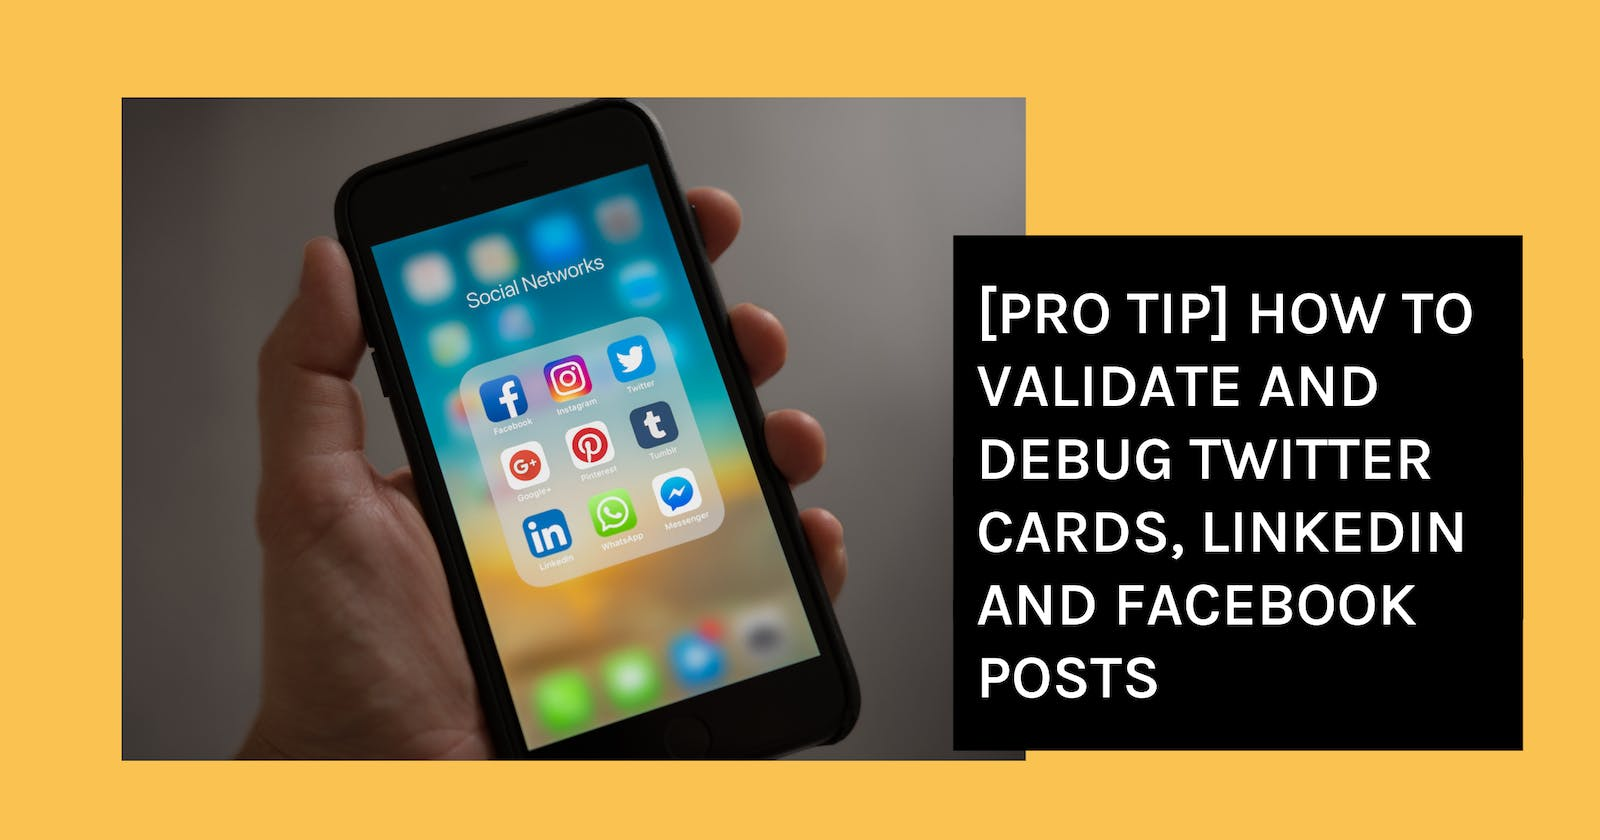 [Pro Tip] How to Validate and Debug Twitter Cards, LinkedIn and Facebook Posts